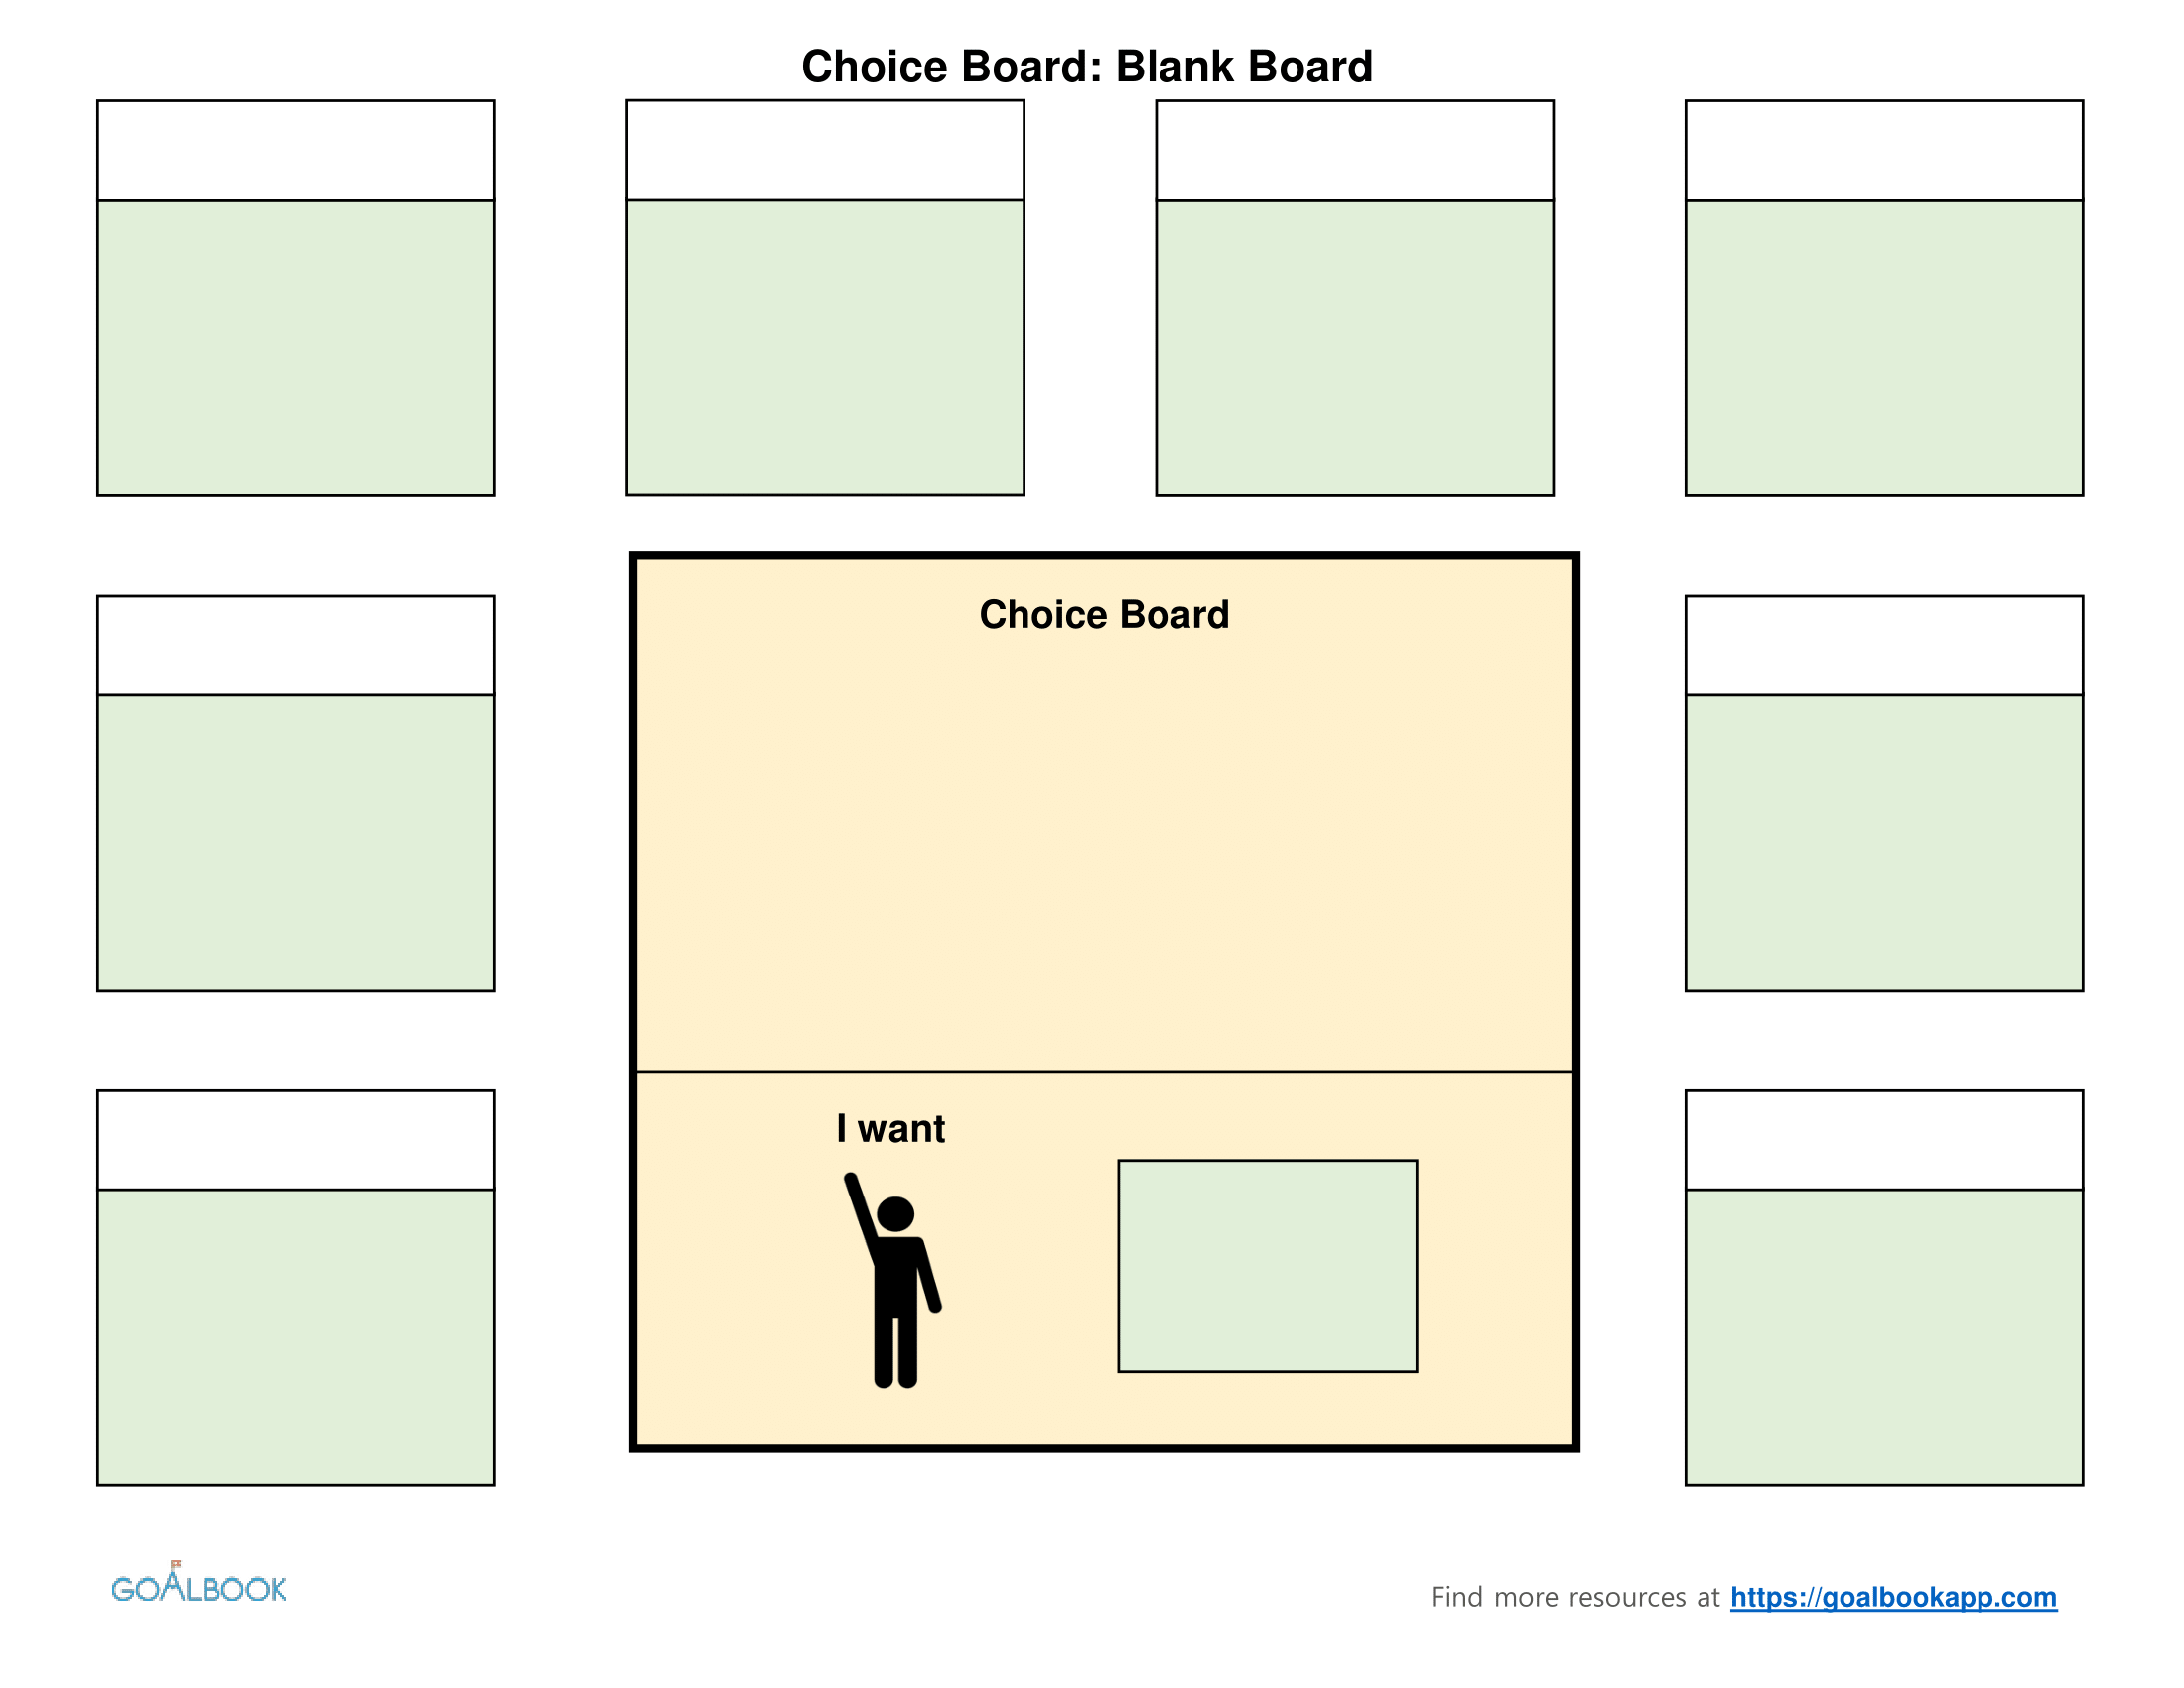 Choice boards udl strategies blank choice board template pronofoot35fo Gallery